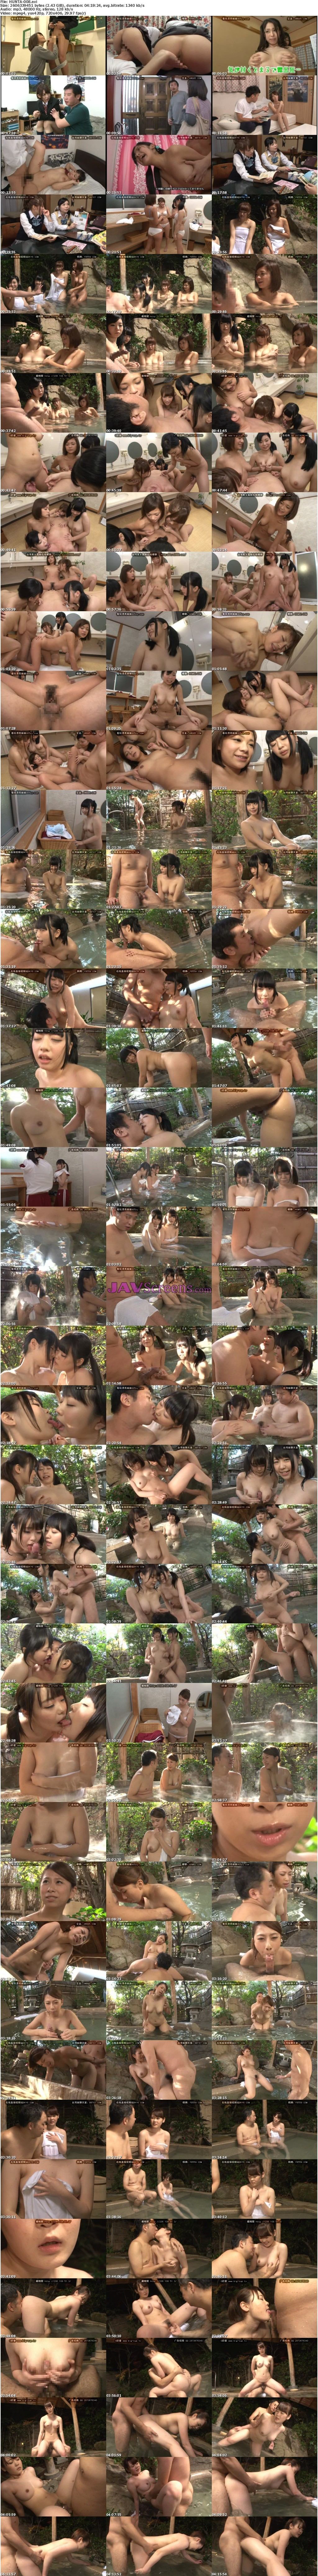 HUNTA-008.jpg - JAV Screenshot